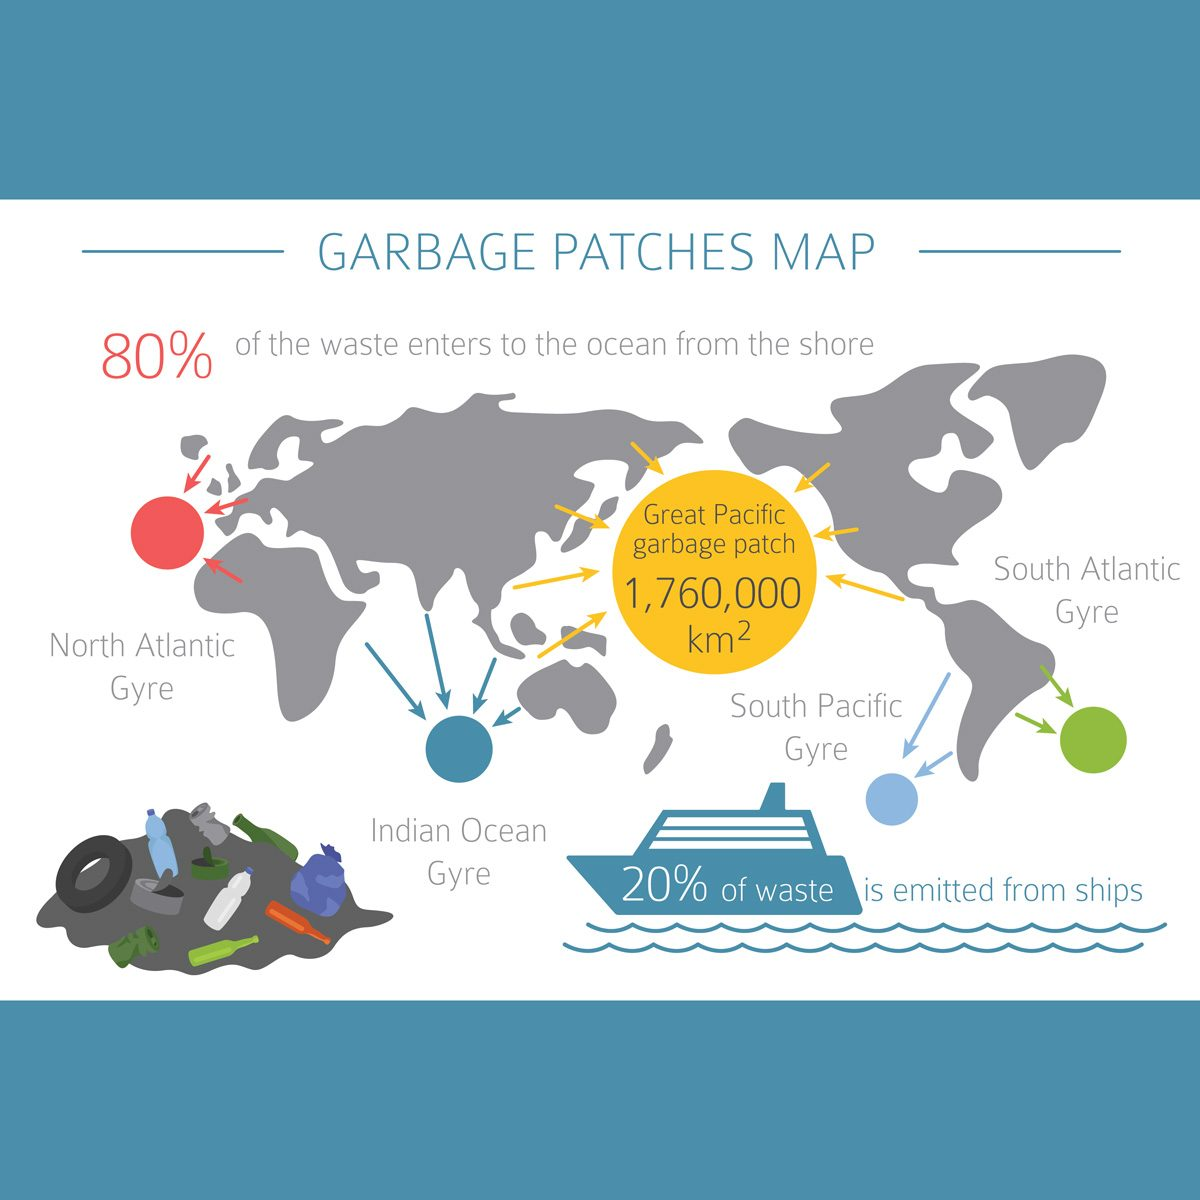 What Is The Great Pacific Garbage Island Family Handyman Scientific Wiring Diagram Patch Location Stats Info Graphic